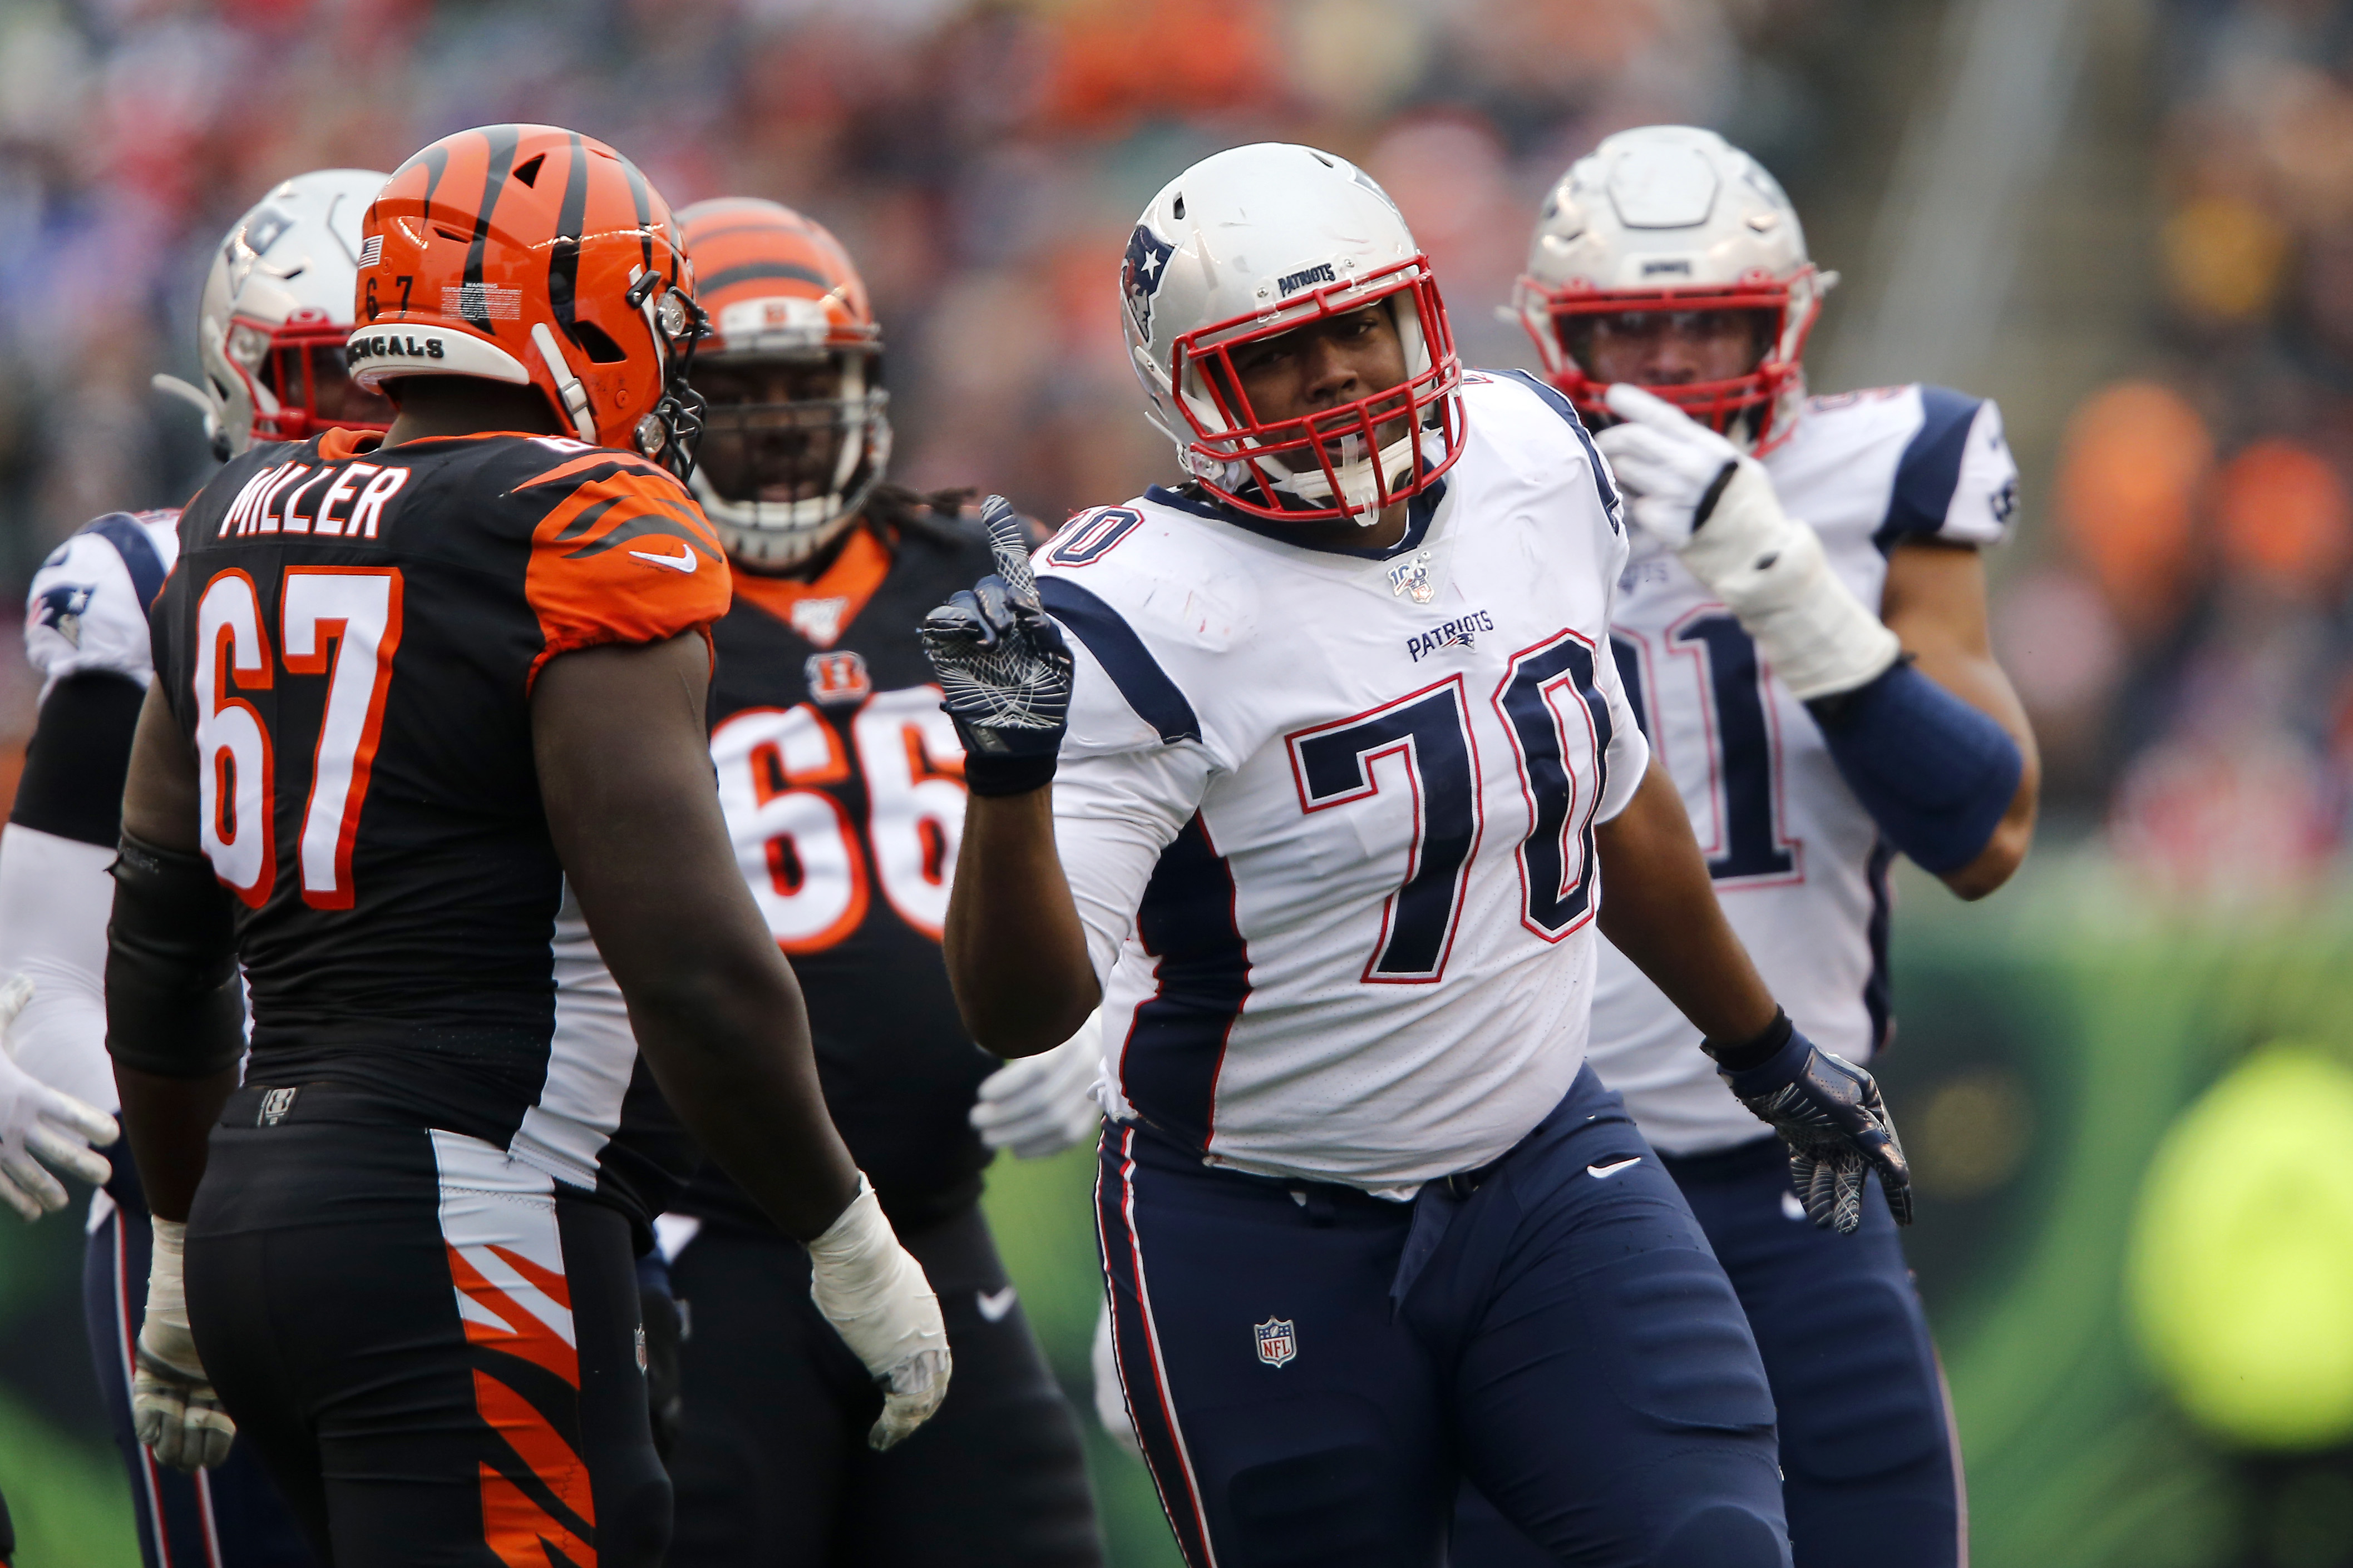 Top 5 Underrated Patriots Players From 2019 Season